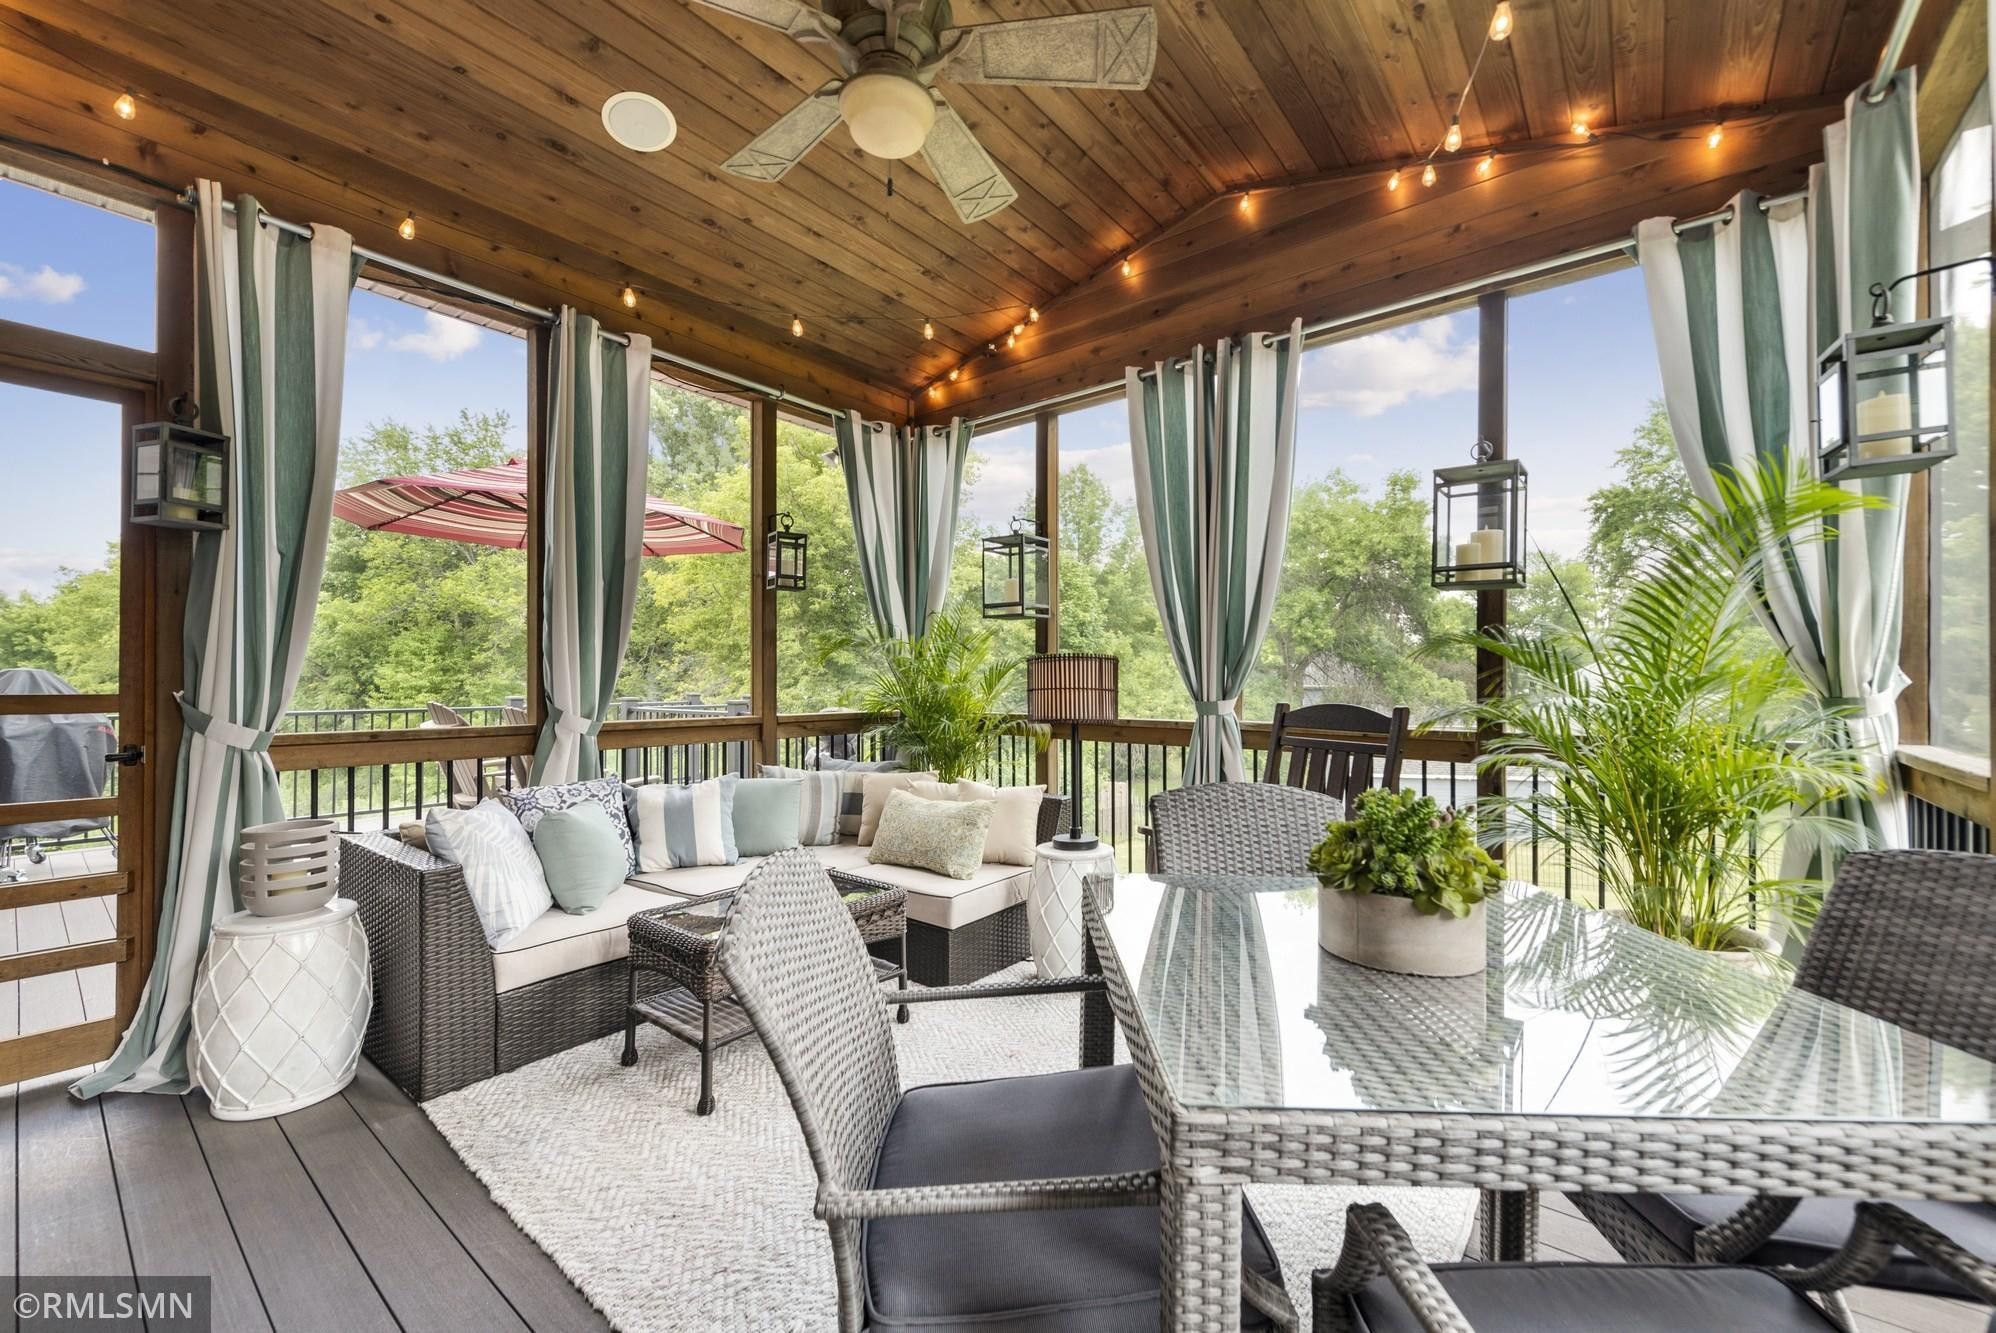 """This screened sunporch will become your """"go to"""" place for times when you want to relax and soak up nature!"""